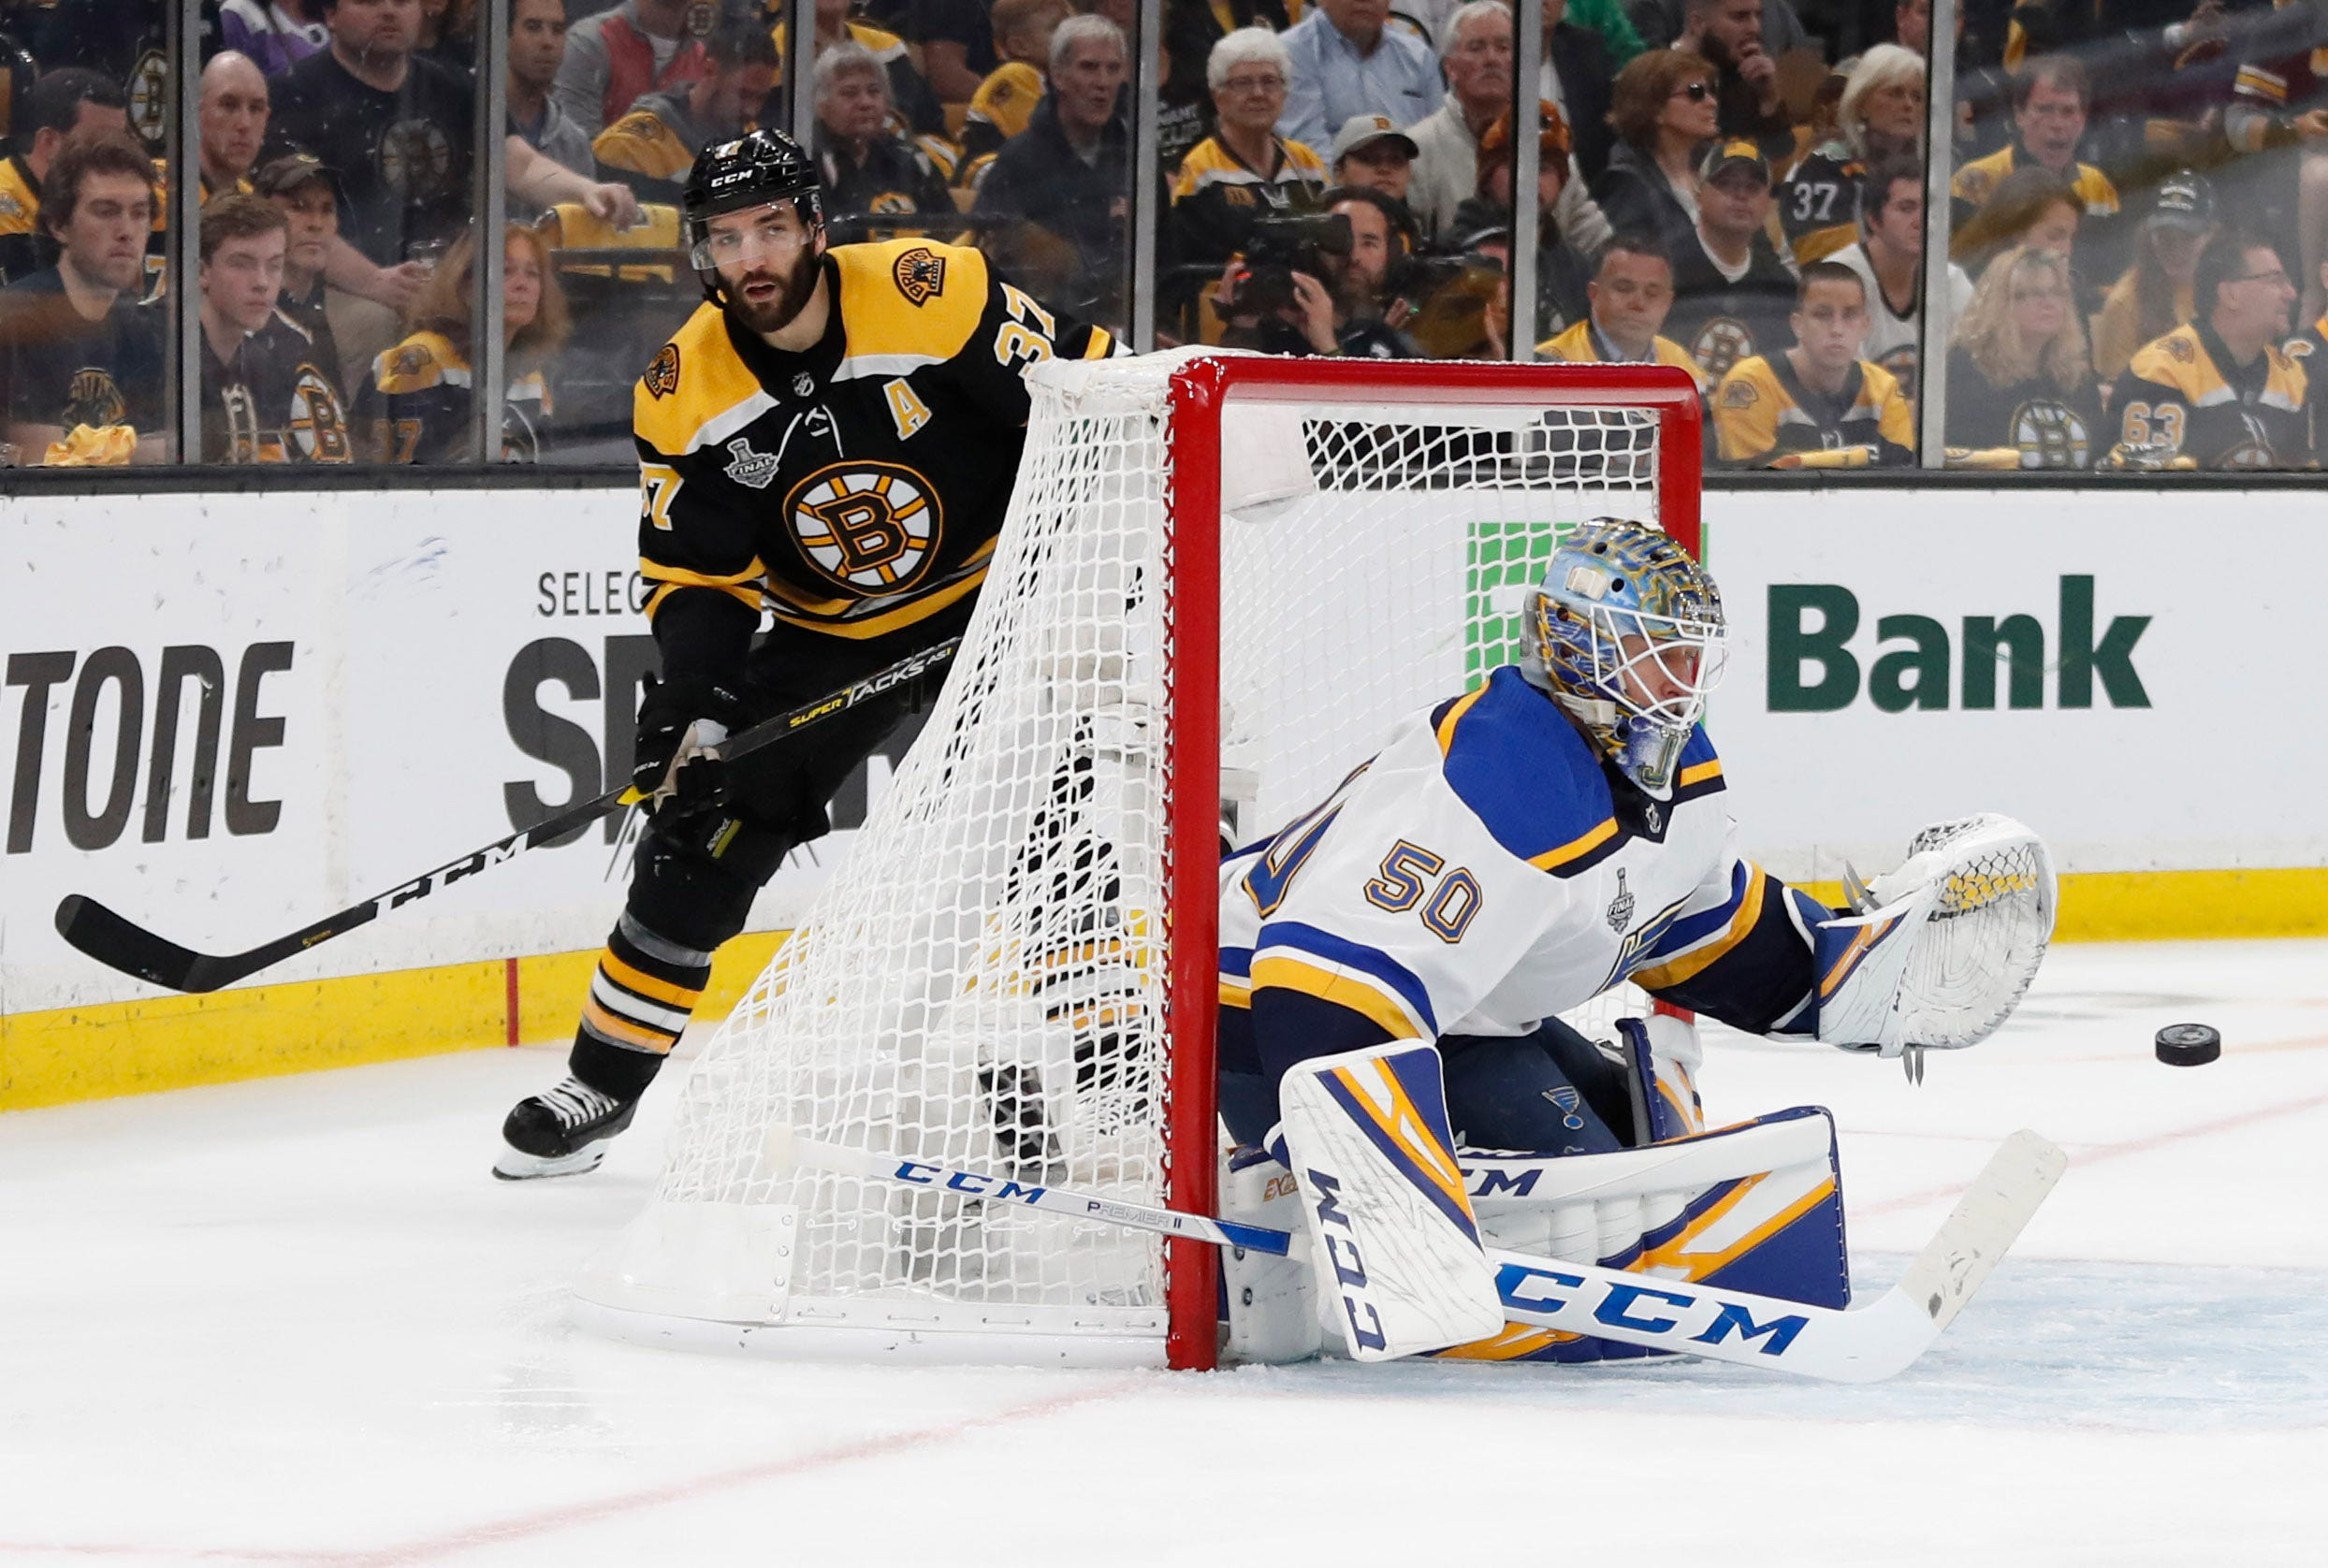 Stanley Cup Finals: Jordan Binnington helps Blues move one win from first championship